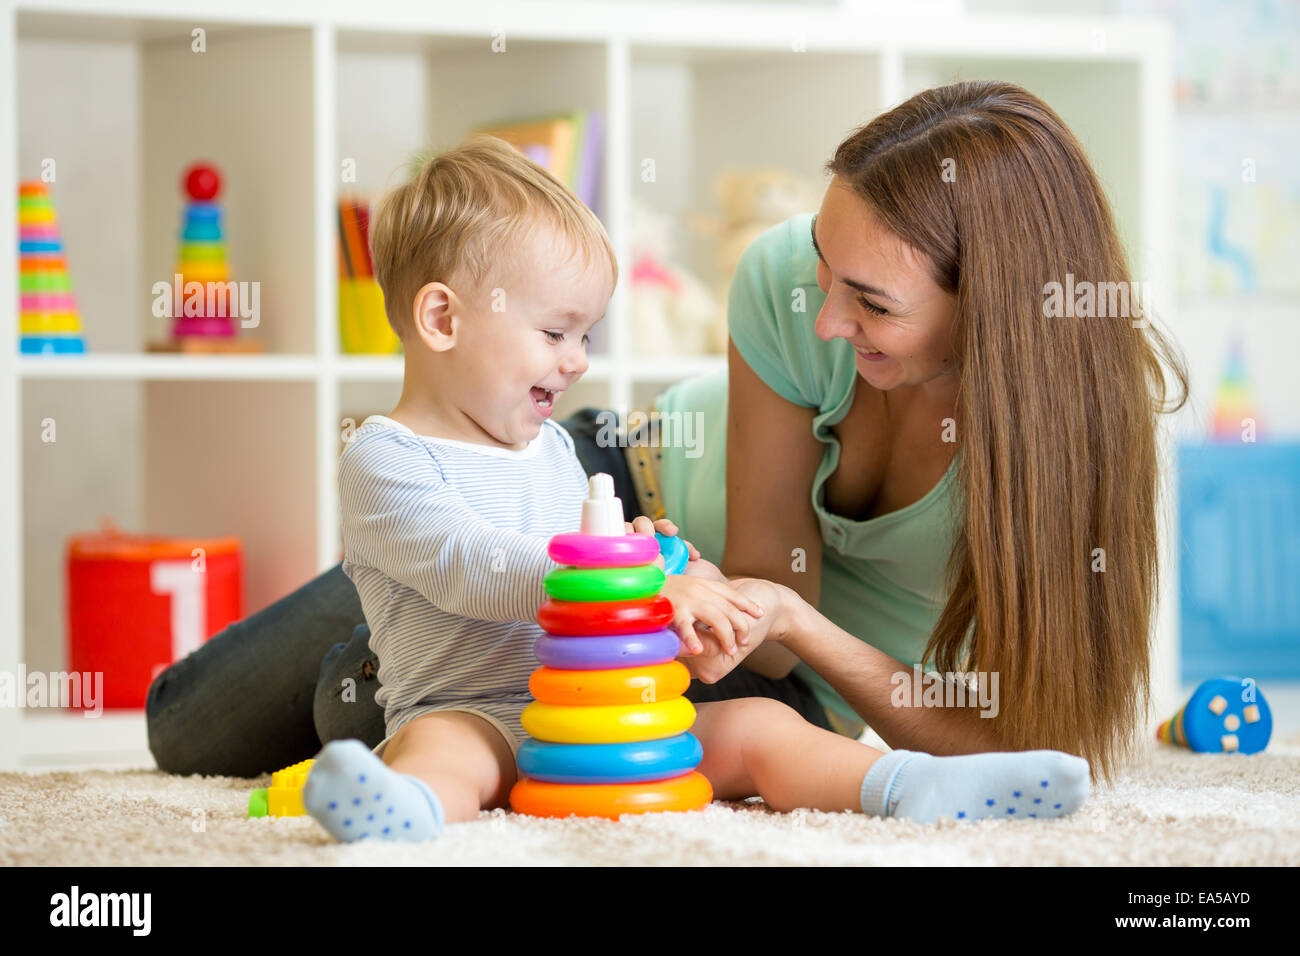 cute mother and child boy play together indoor at home - Stock Image